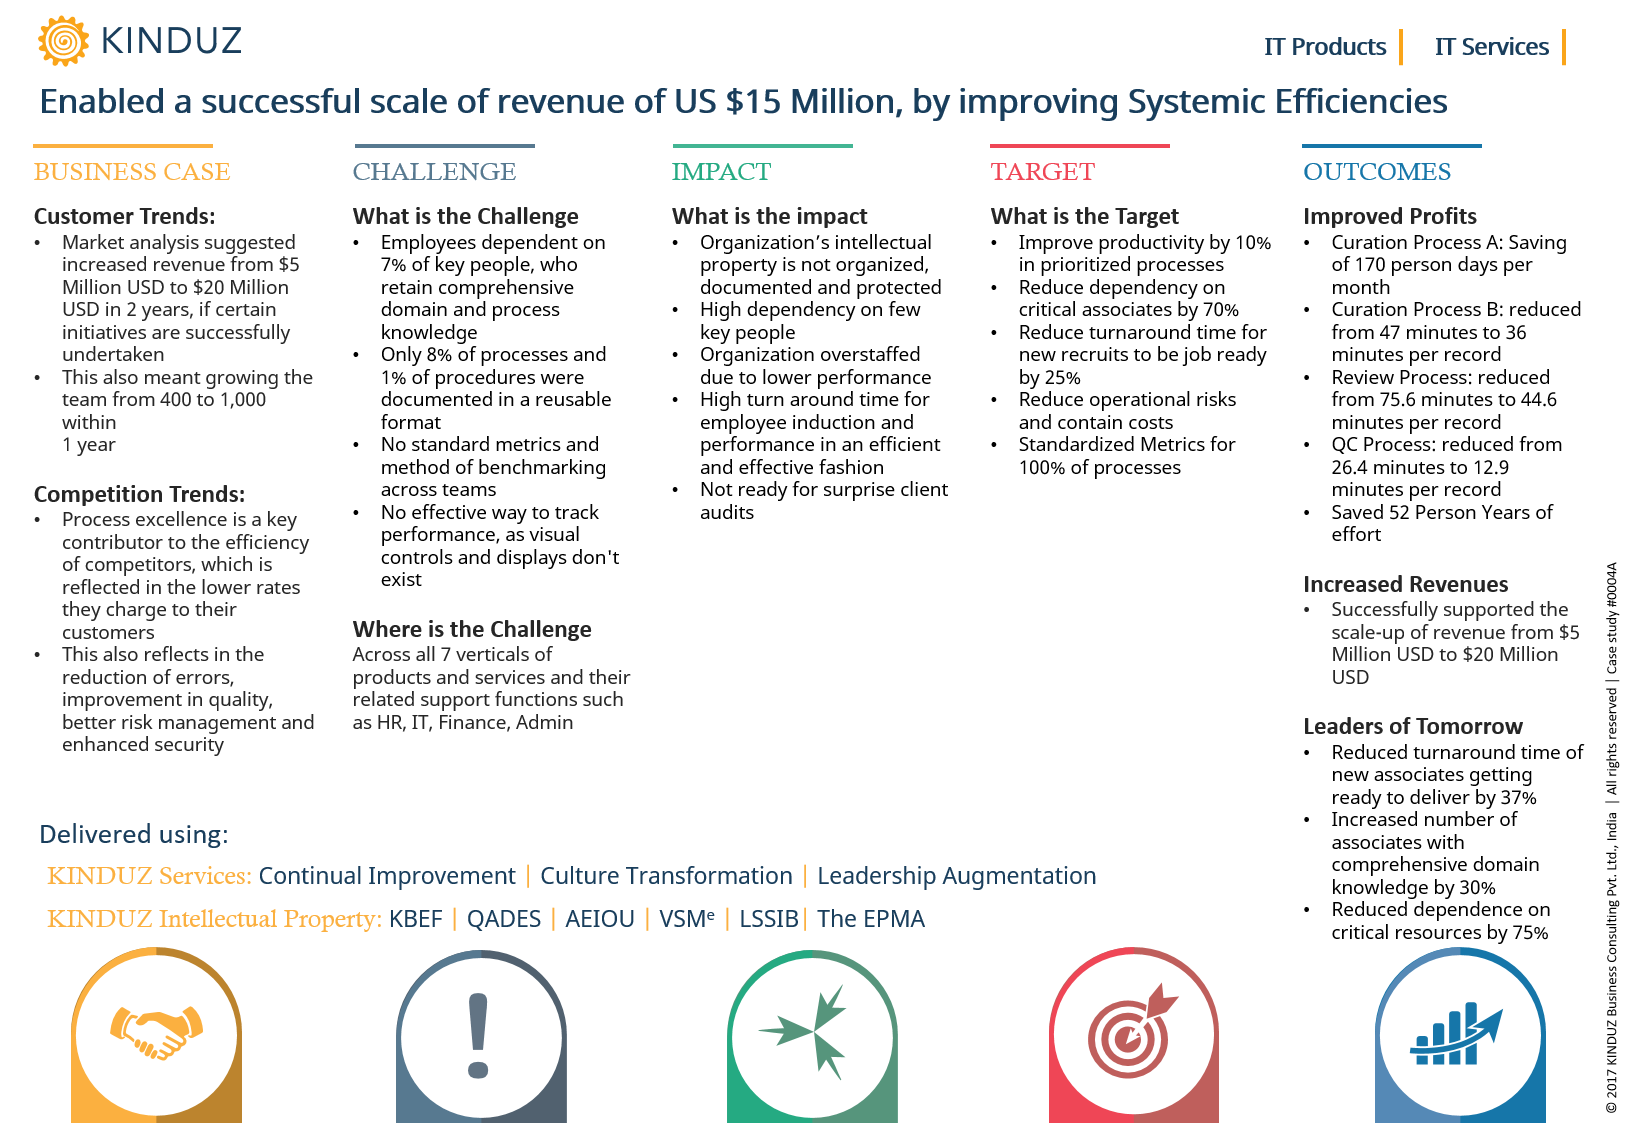 Enabled a successful scale of revenue of US $15 Million, by improving Systemic Efficiencies